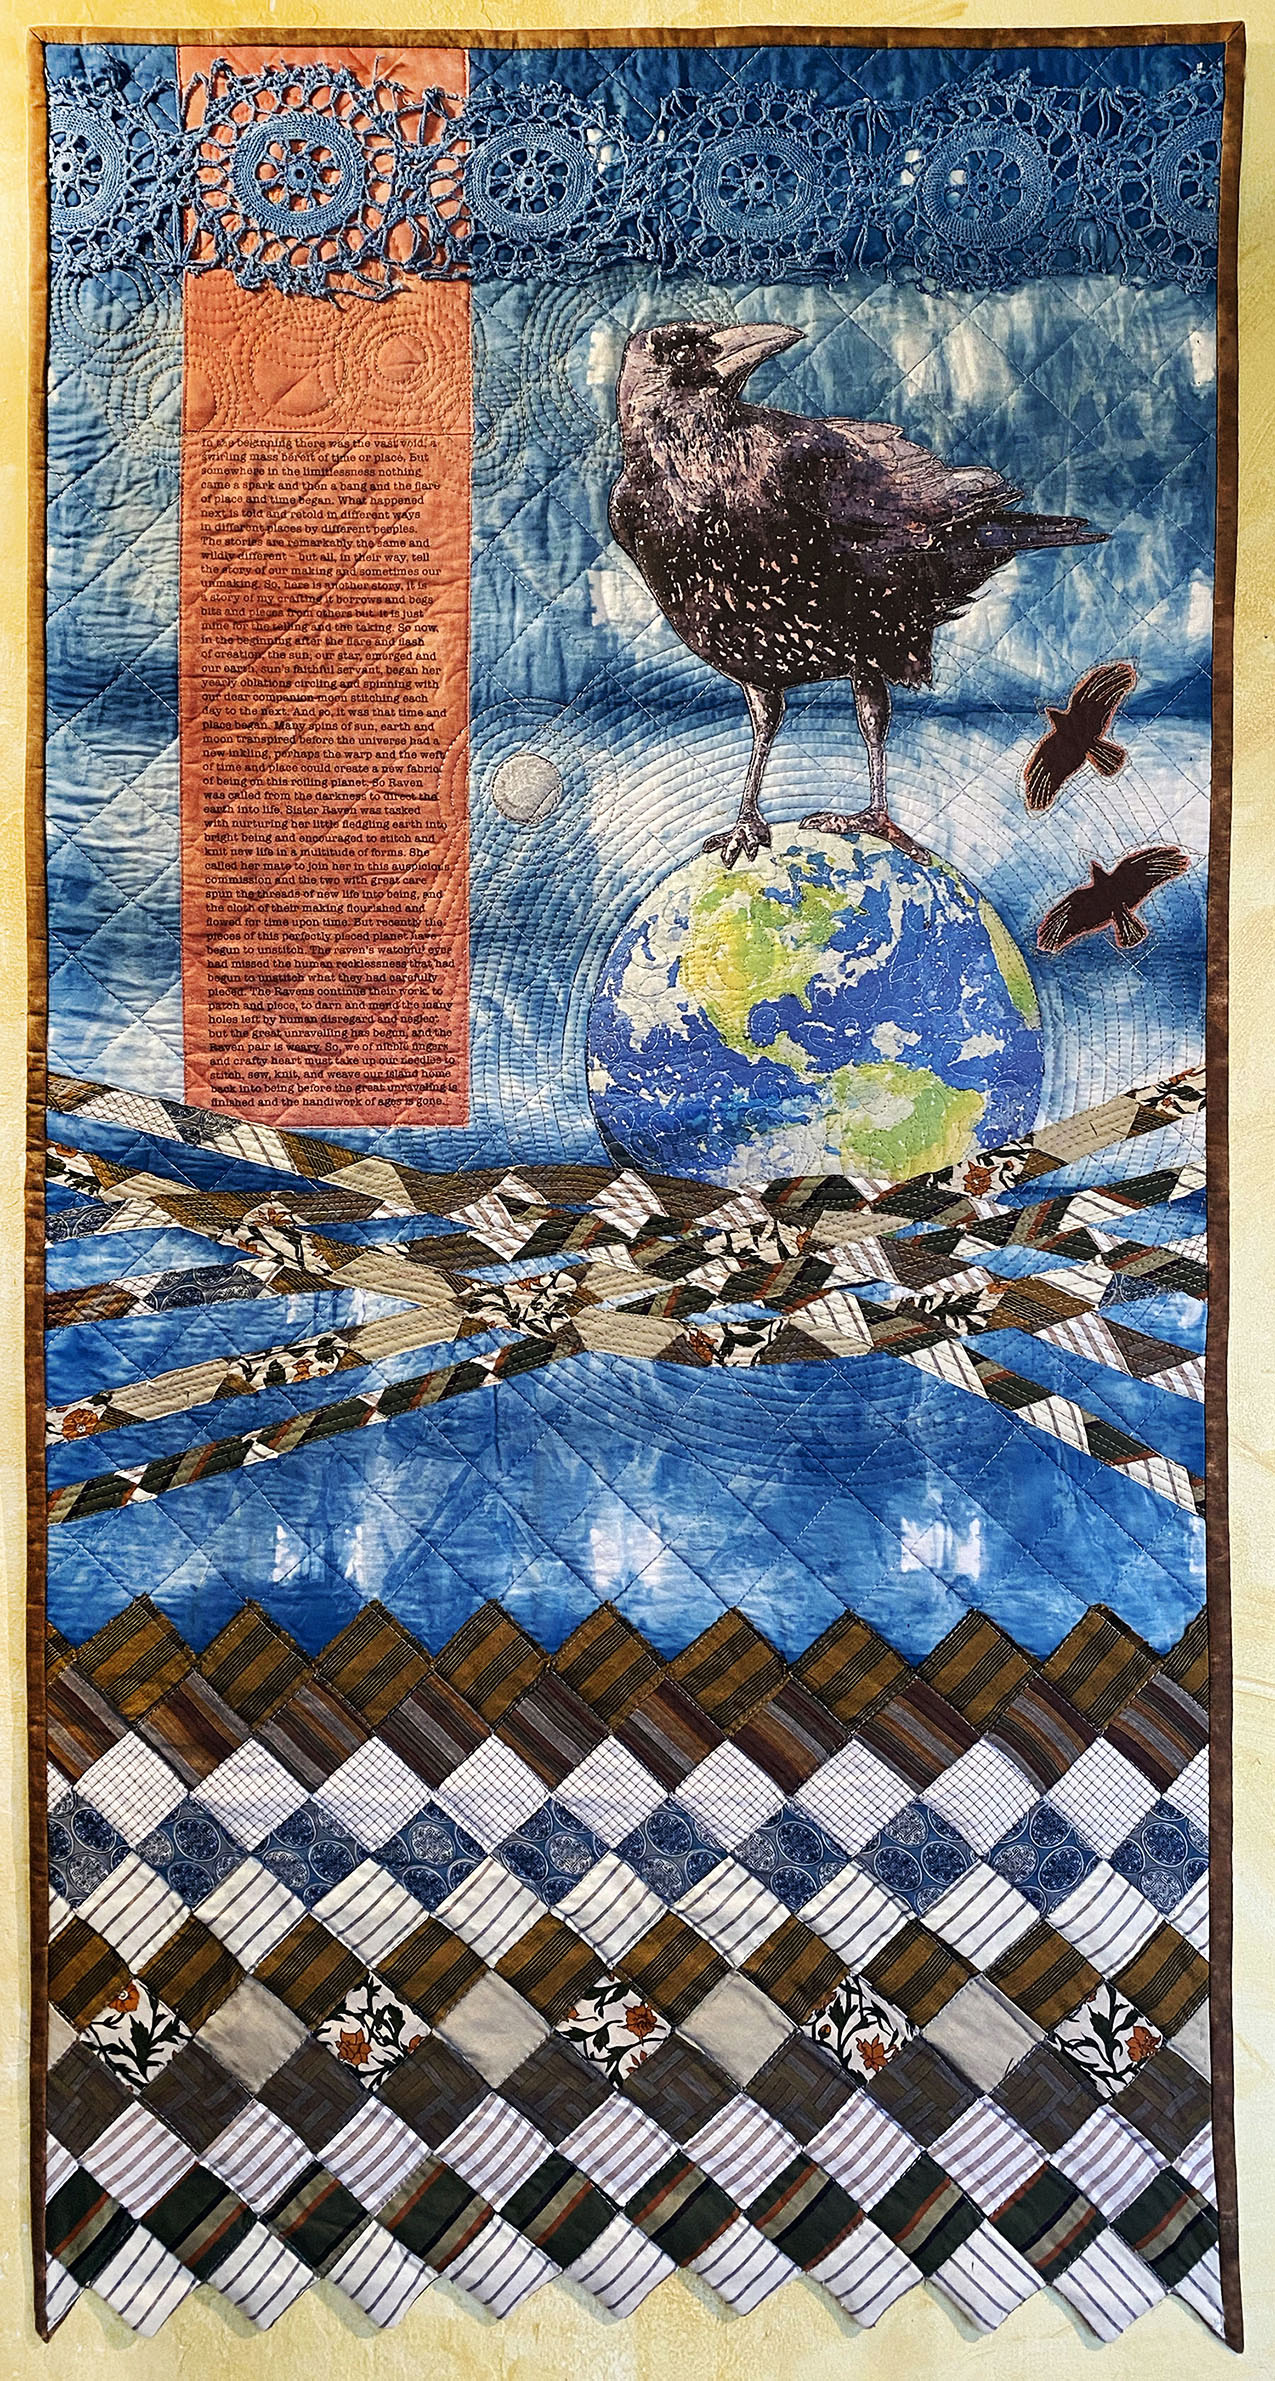 art quilt featuring a raven atop the Earth